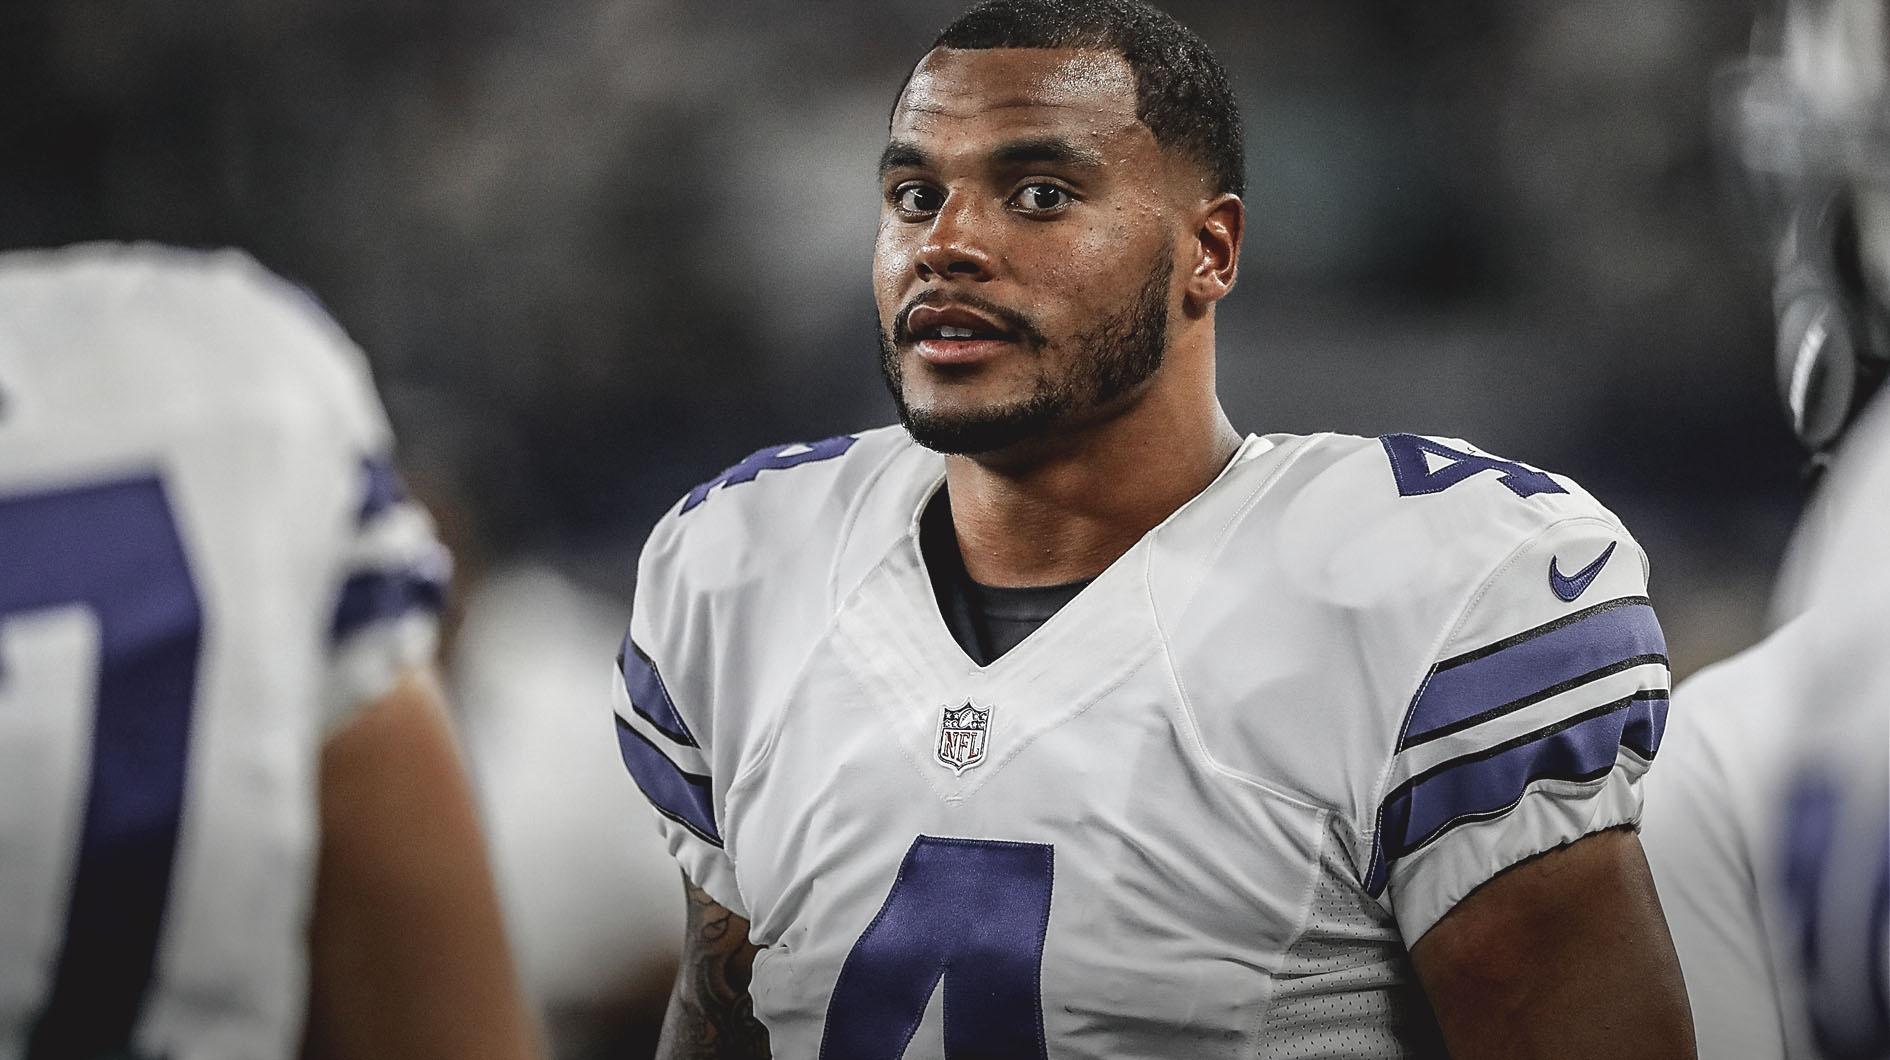 NFL Dak Prescott Dallas Cowboys NFL 2019 Season